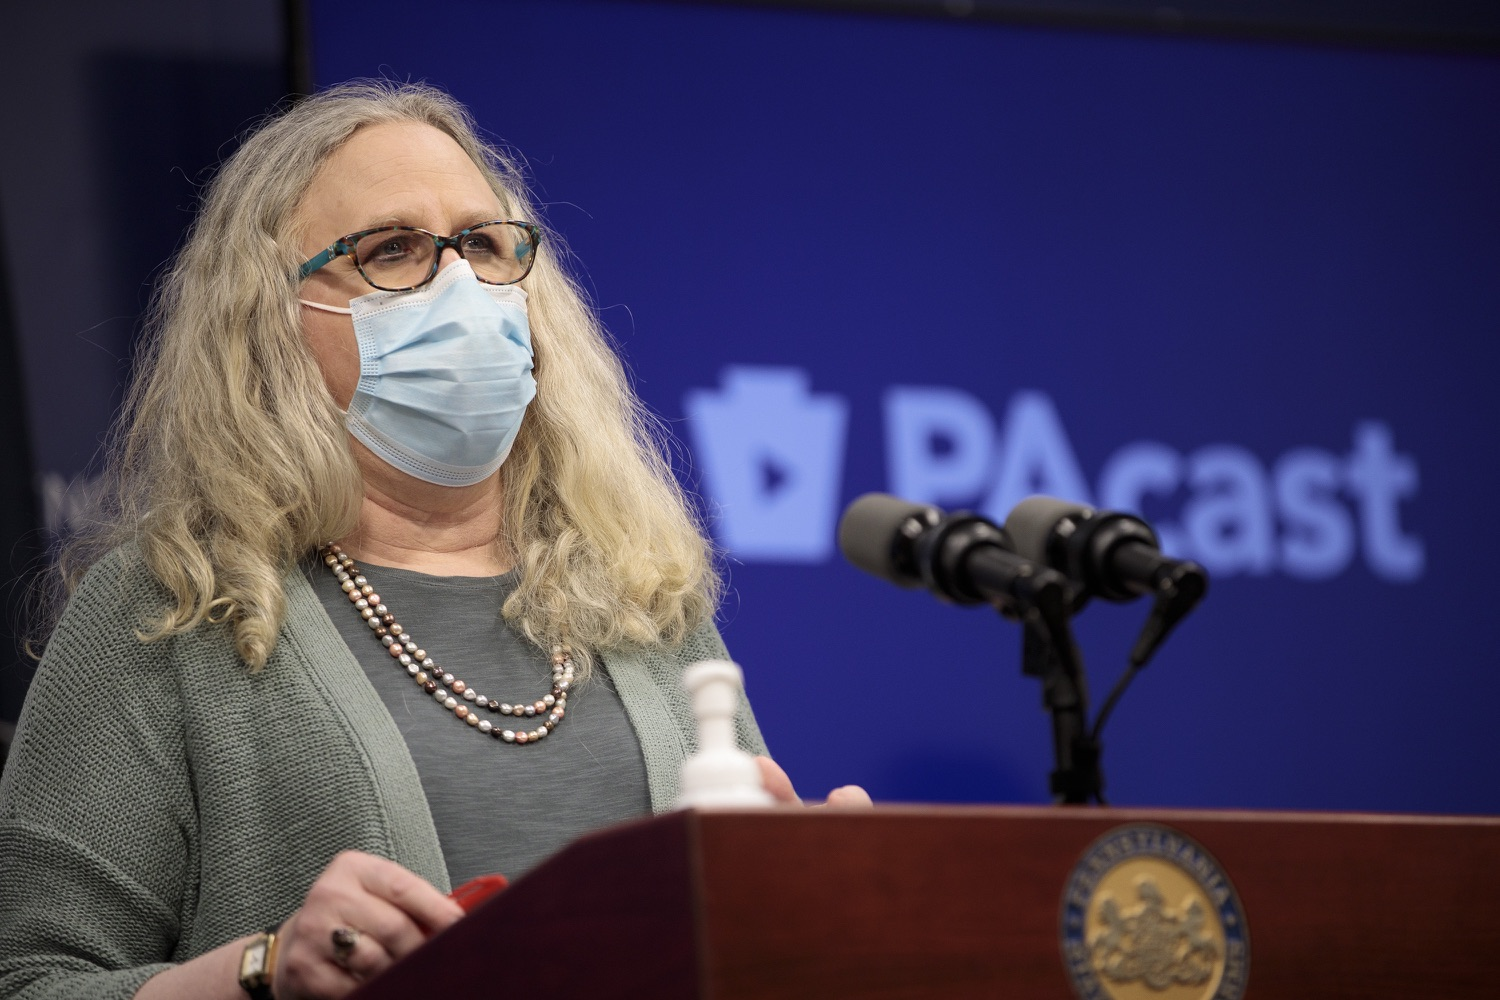 "<a href=""https://filesource.wostreaming.net/commonwealthofpa/photo/18472_gov_vaccine_dz_09.jpg"" target=""_blank"">⇣ Download Photo<br></a>Secretary of Health Dr. Rachel Levine speaks at the press conference.  The commonwealths COVID-19 vaccination distribution plan was designed to be fluid and flexible to meet guidance and recommendations from the federal government. Today, Governor Tom Wolf and Secretary of Health Dr. Rachel Levine announced the fourth version of the plan, detailing the updates and how the state is working to ensure safe, swift implementation. Harrisburg, PA  January 8, 2021"